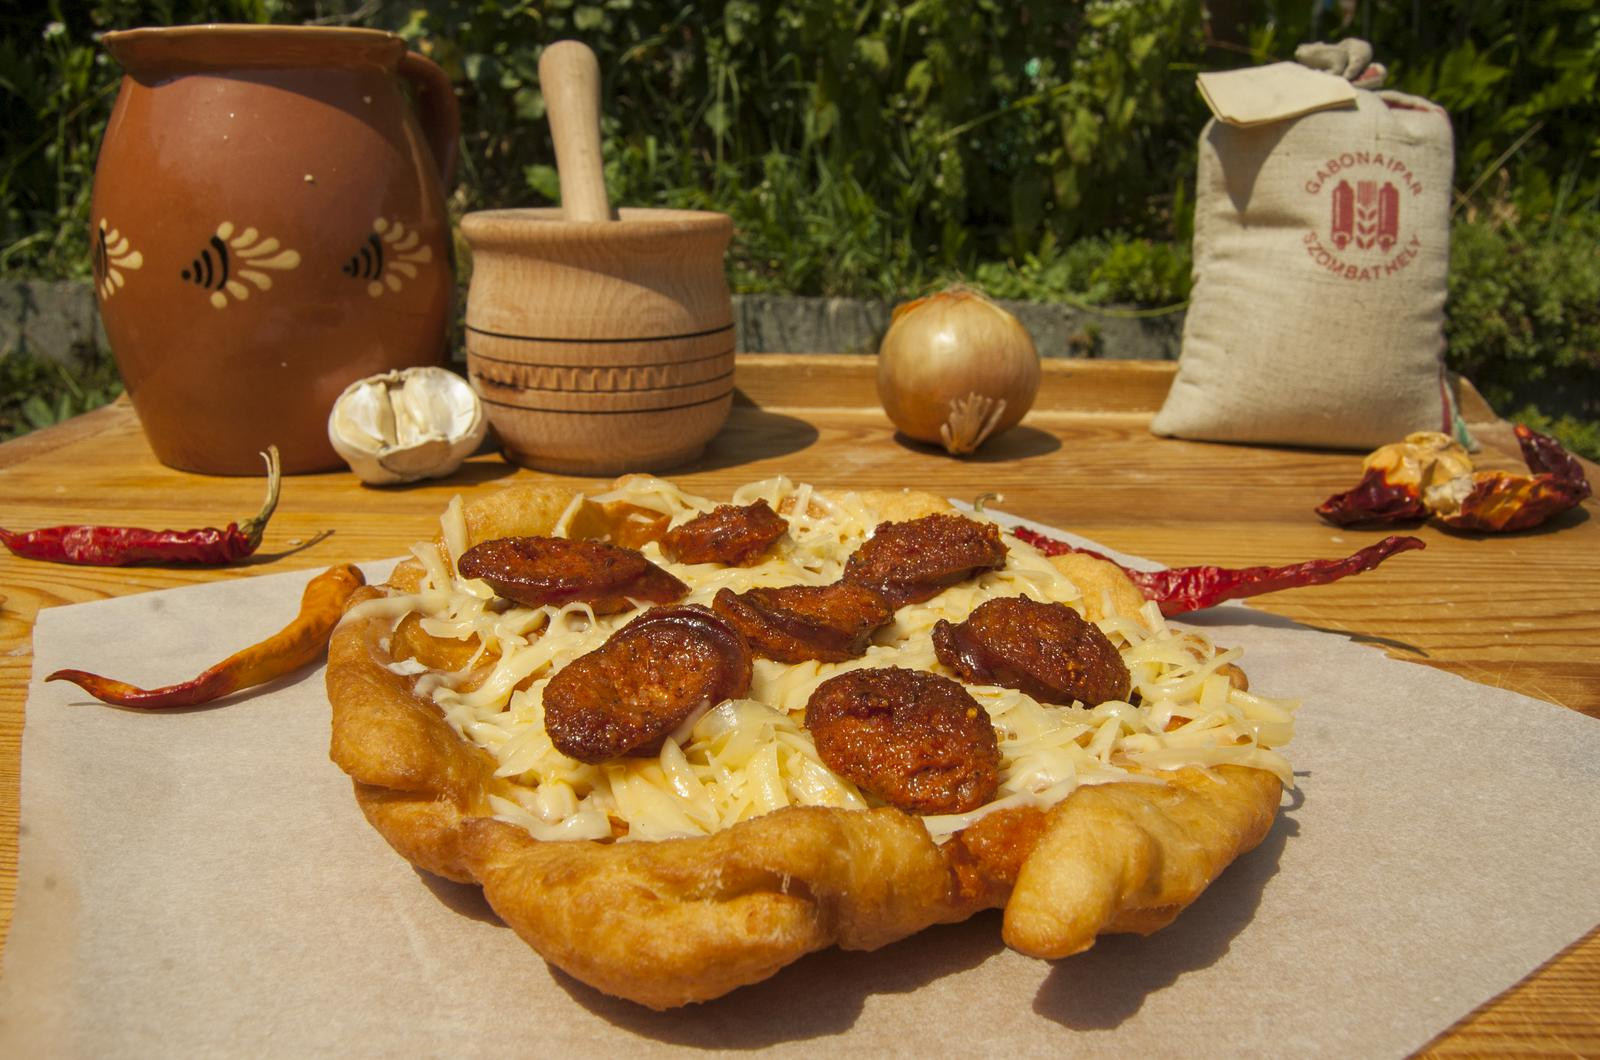 Fried Hungarian Flatbread with Sausages